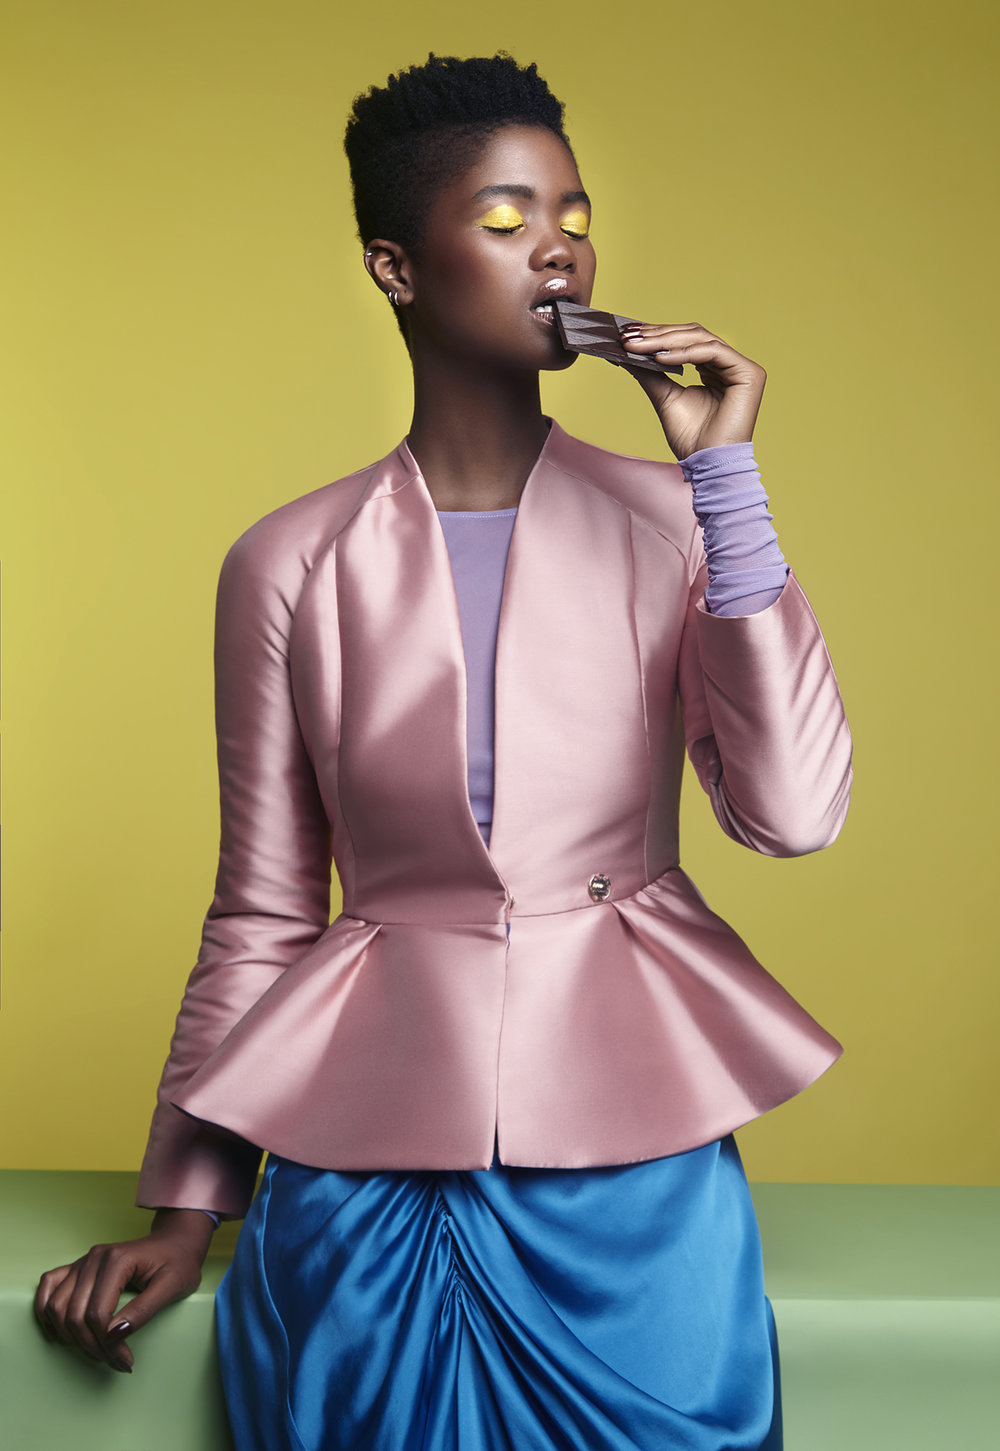 Colorful-Fashion-Editorial-Black-Model-by-Fashion-Photographer-Dana-Cole-Fashion-Styling-pink-jacket.jpg